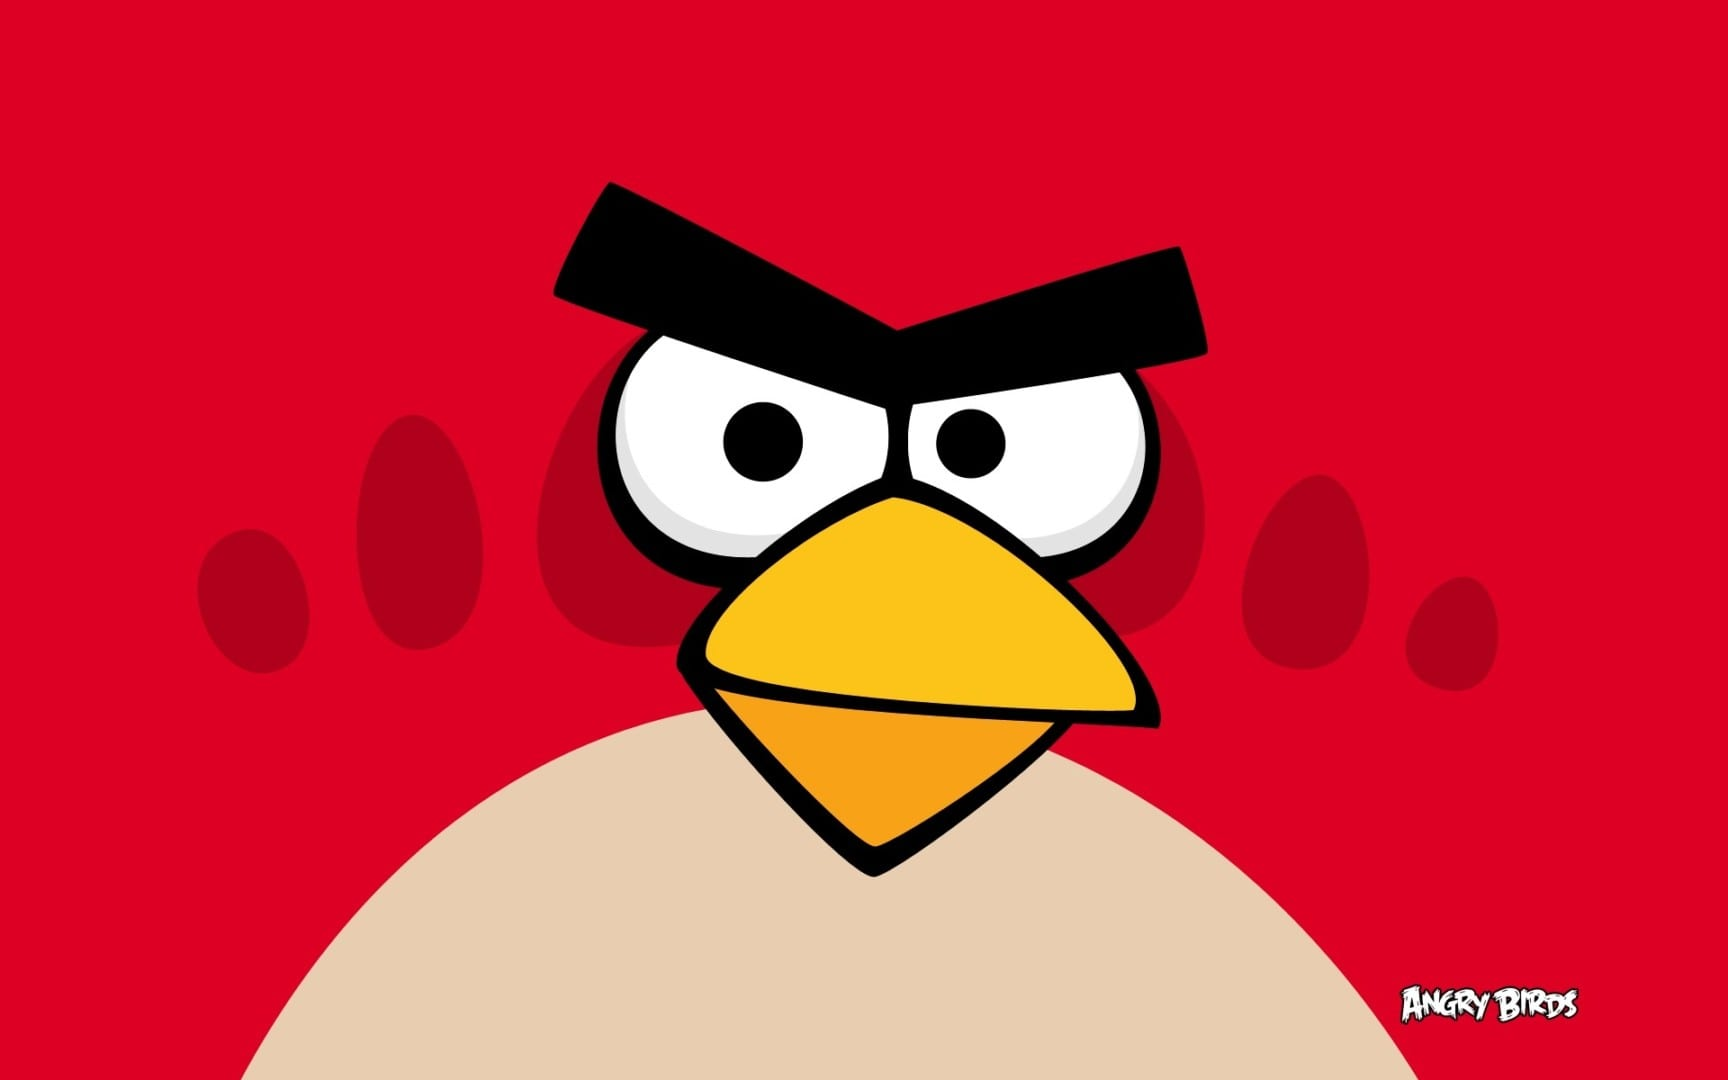 angry birds wide